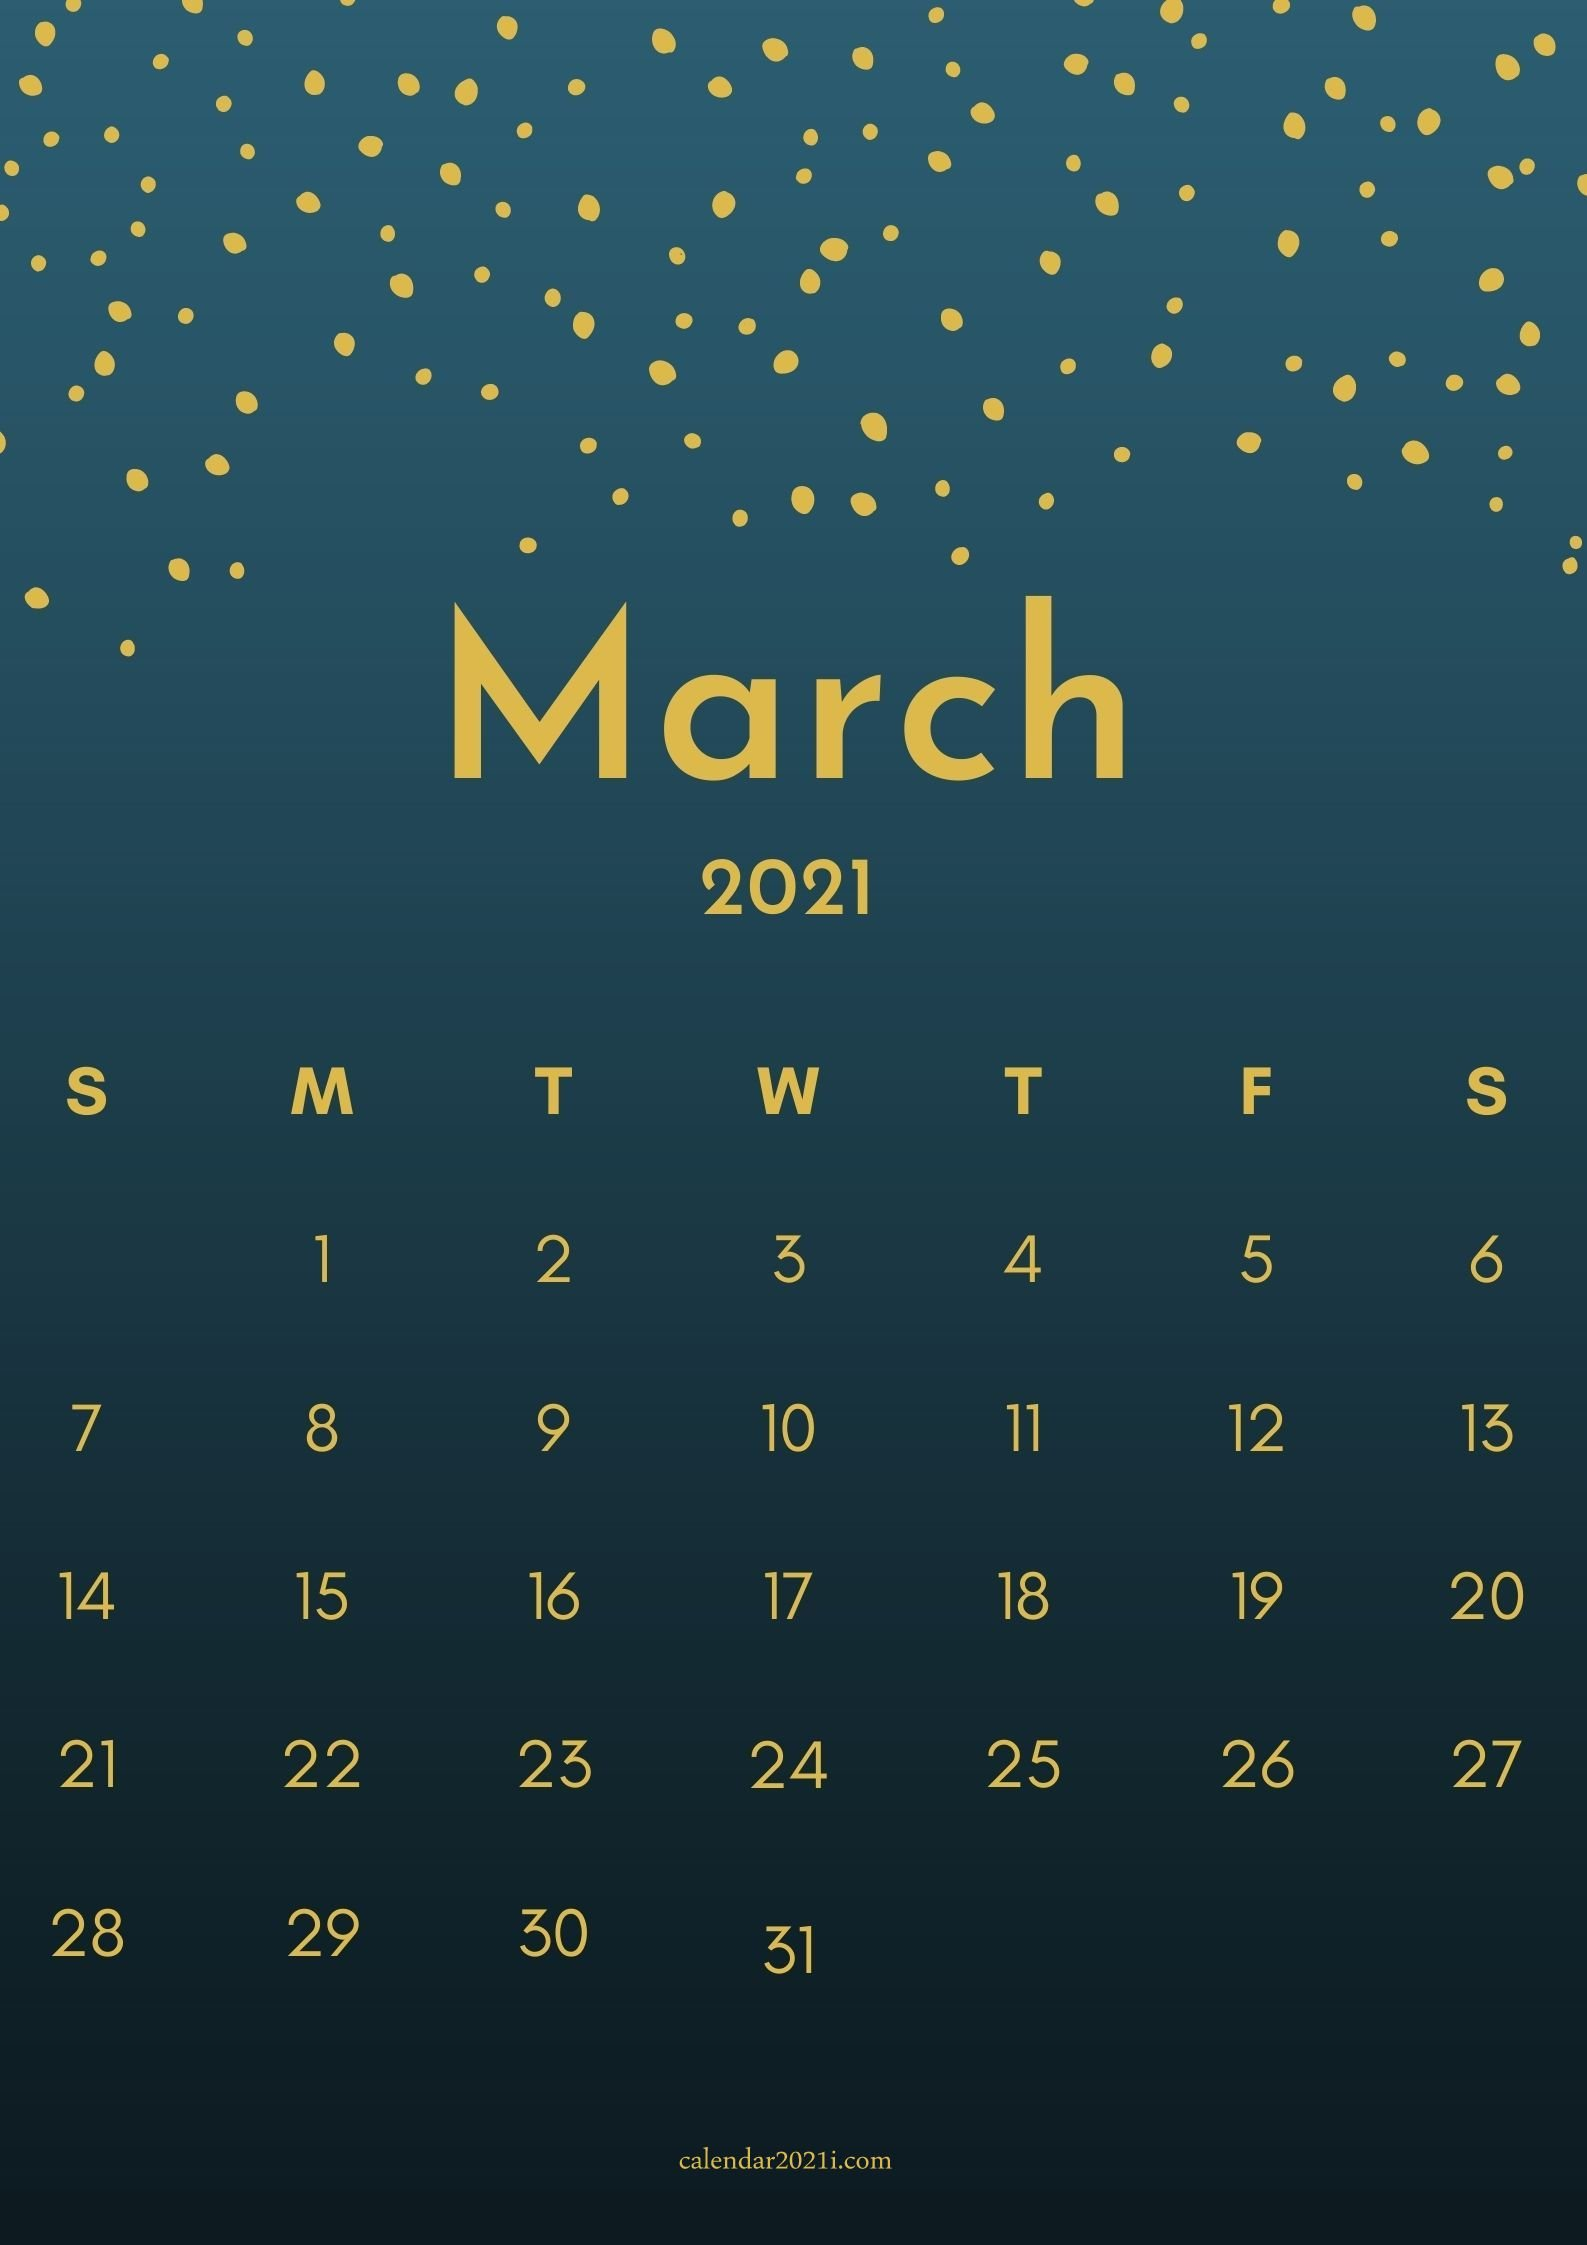 iPhone March 2021 Calendar Wallpapers Download Calendar 2021